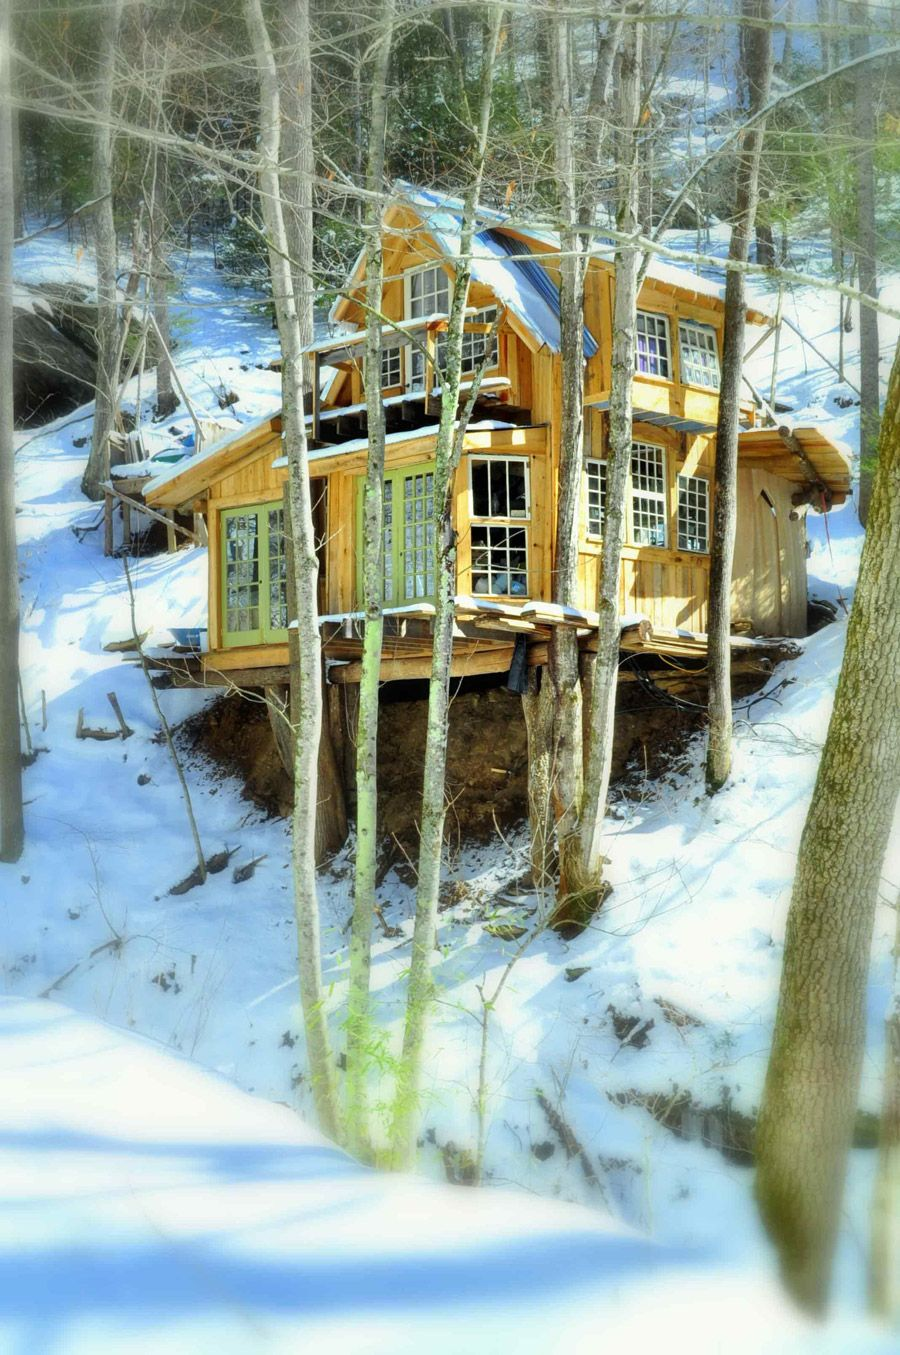 Green Mountain Treehouse A 400 square feet tiny house built with